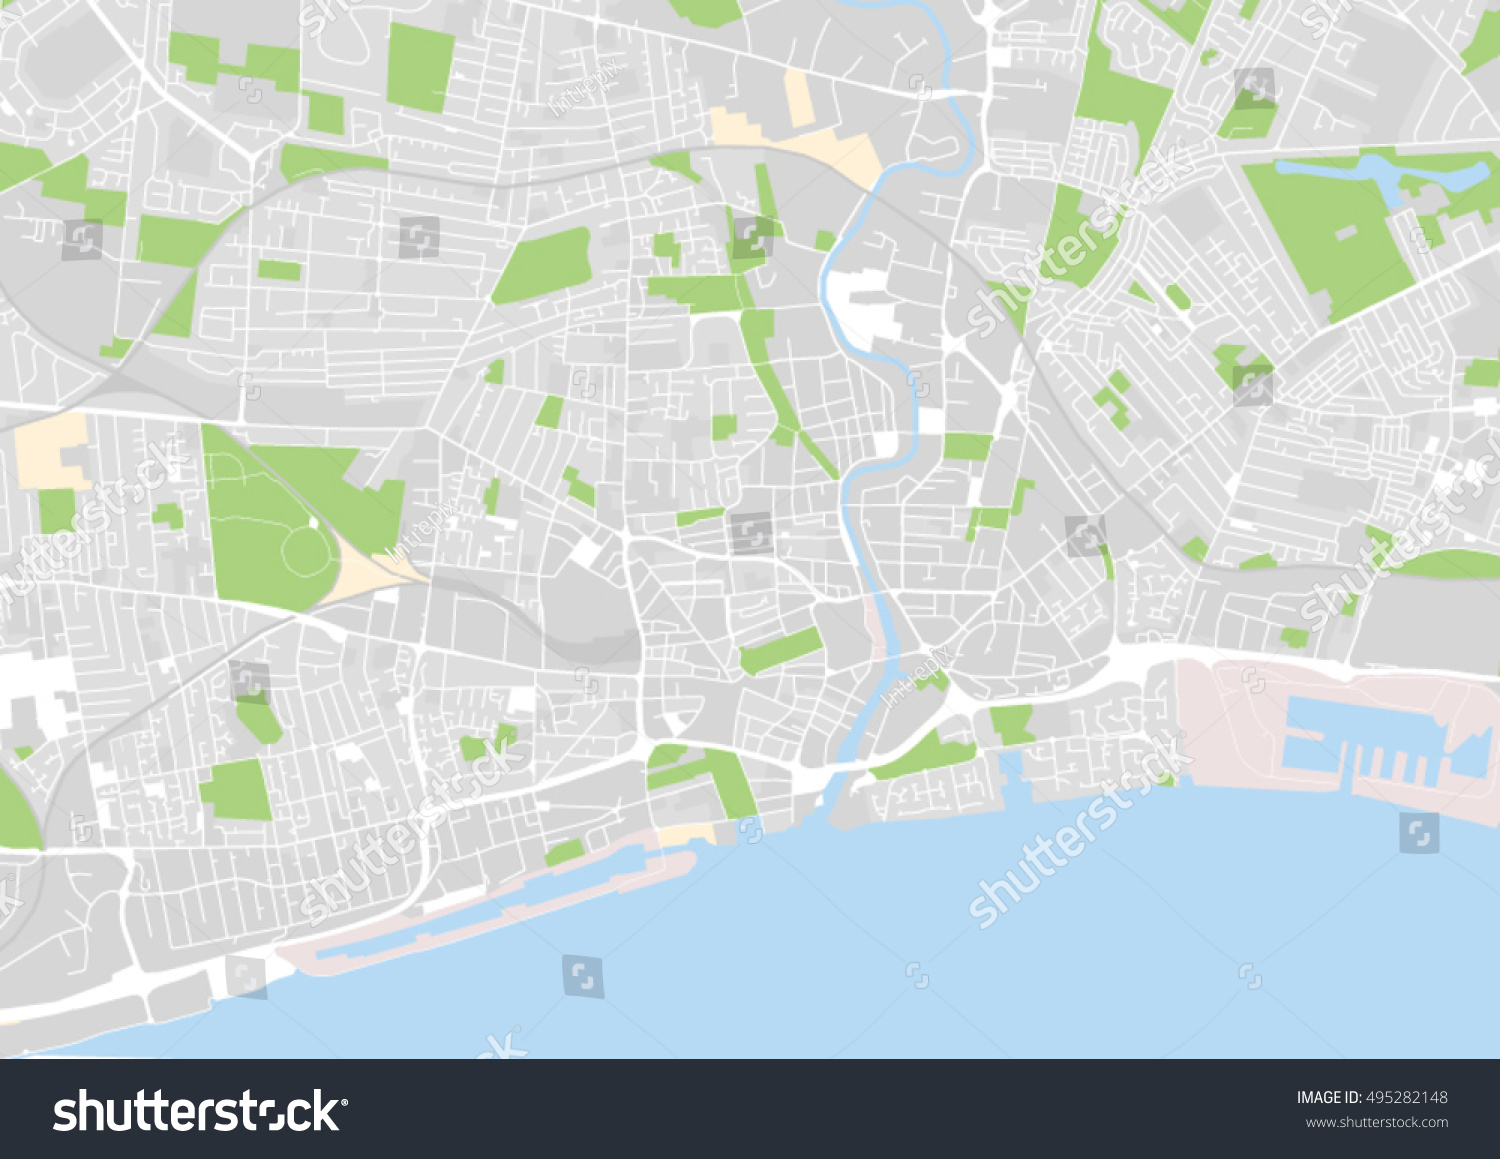 vector city map of Kingston Upon Hull United Kingdom